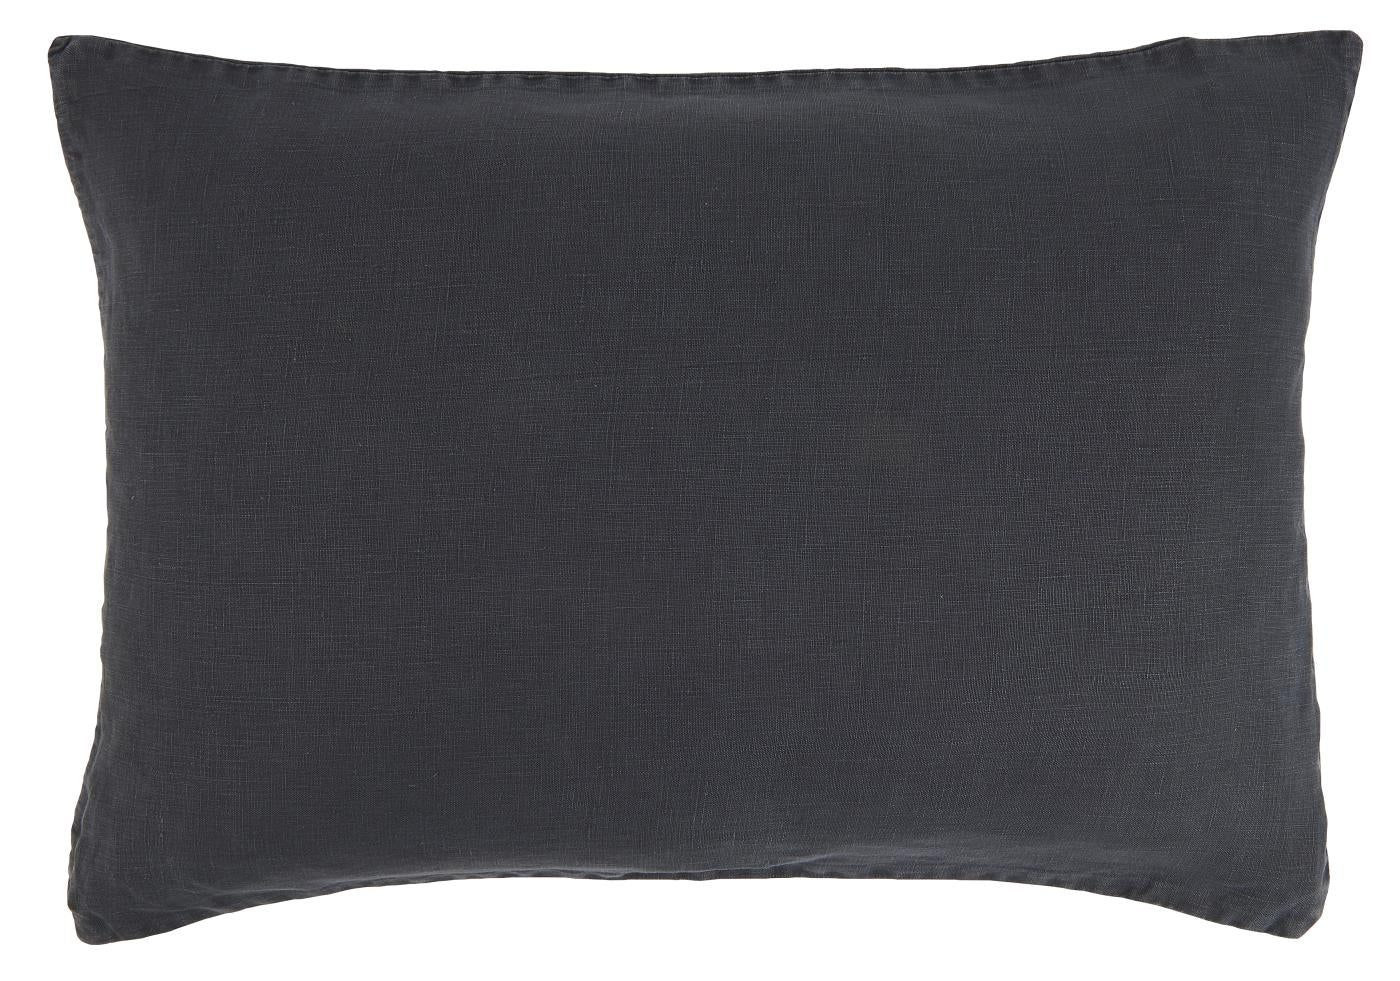 Ib Laursen Cushion Cover 60 x 40 cm midnight blue linen